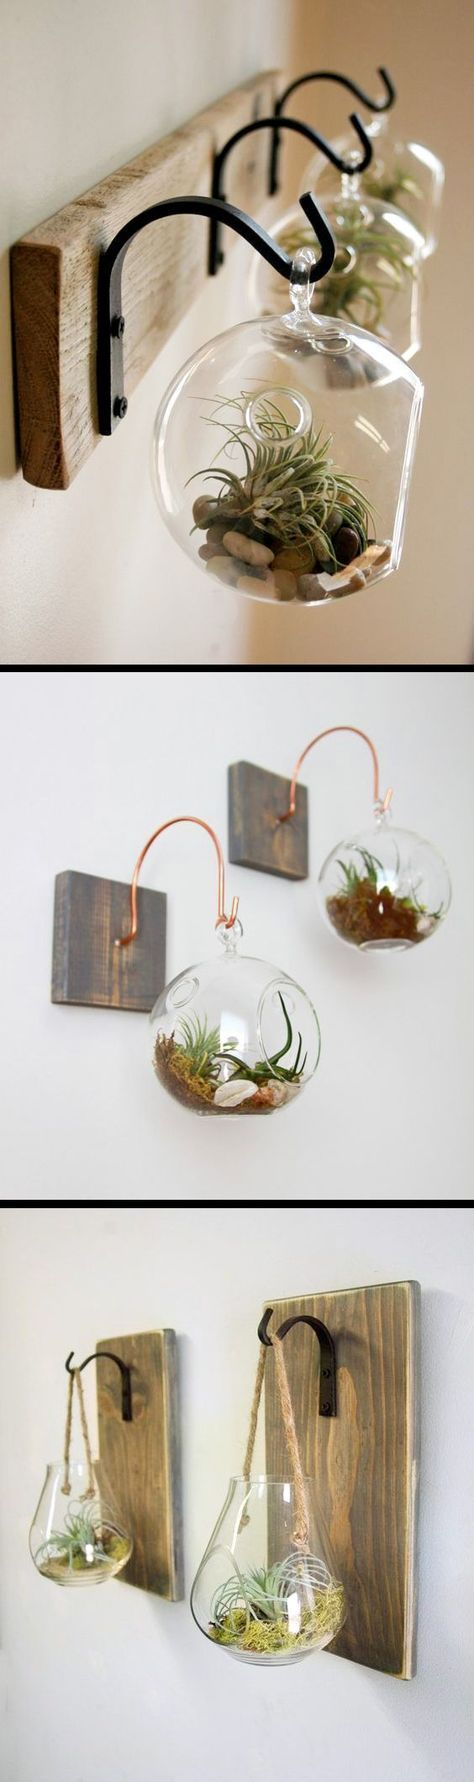 Hanging Terrarium Ideas For Air Plants And Succulents A Simple Yet